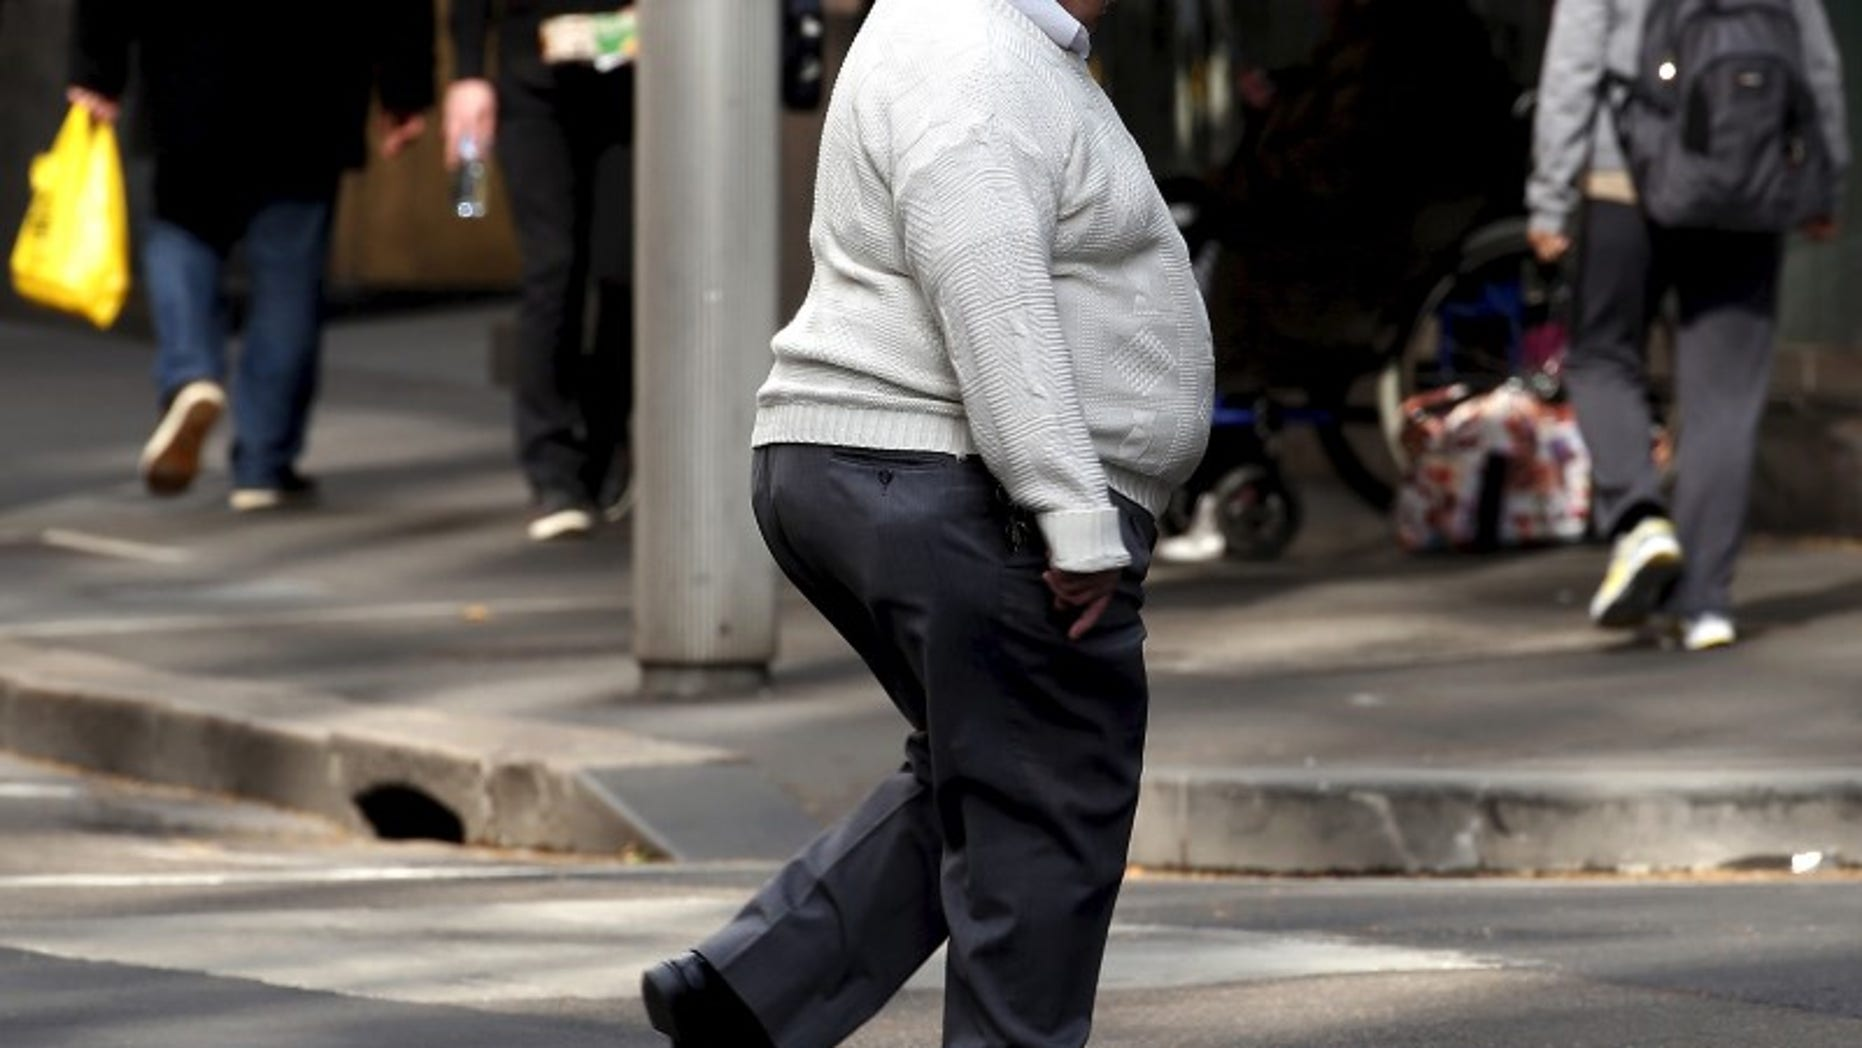 A man crosses a main road as pedestrians carrying food walk along the footpath in central Sydney, Australia